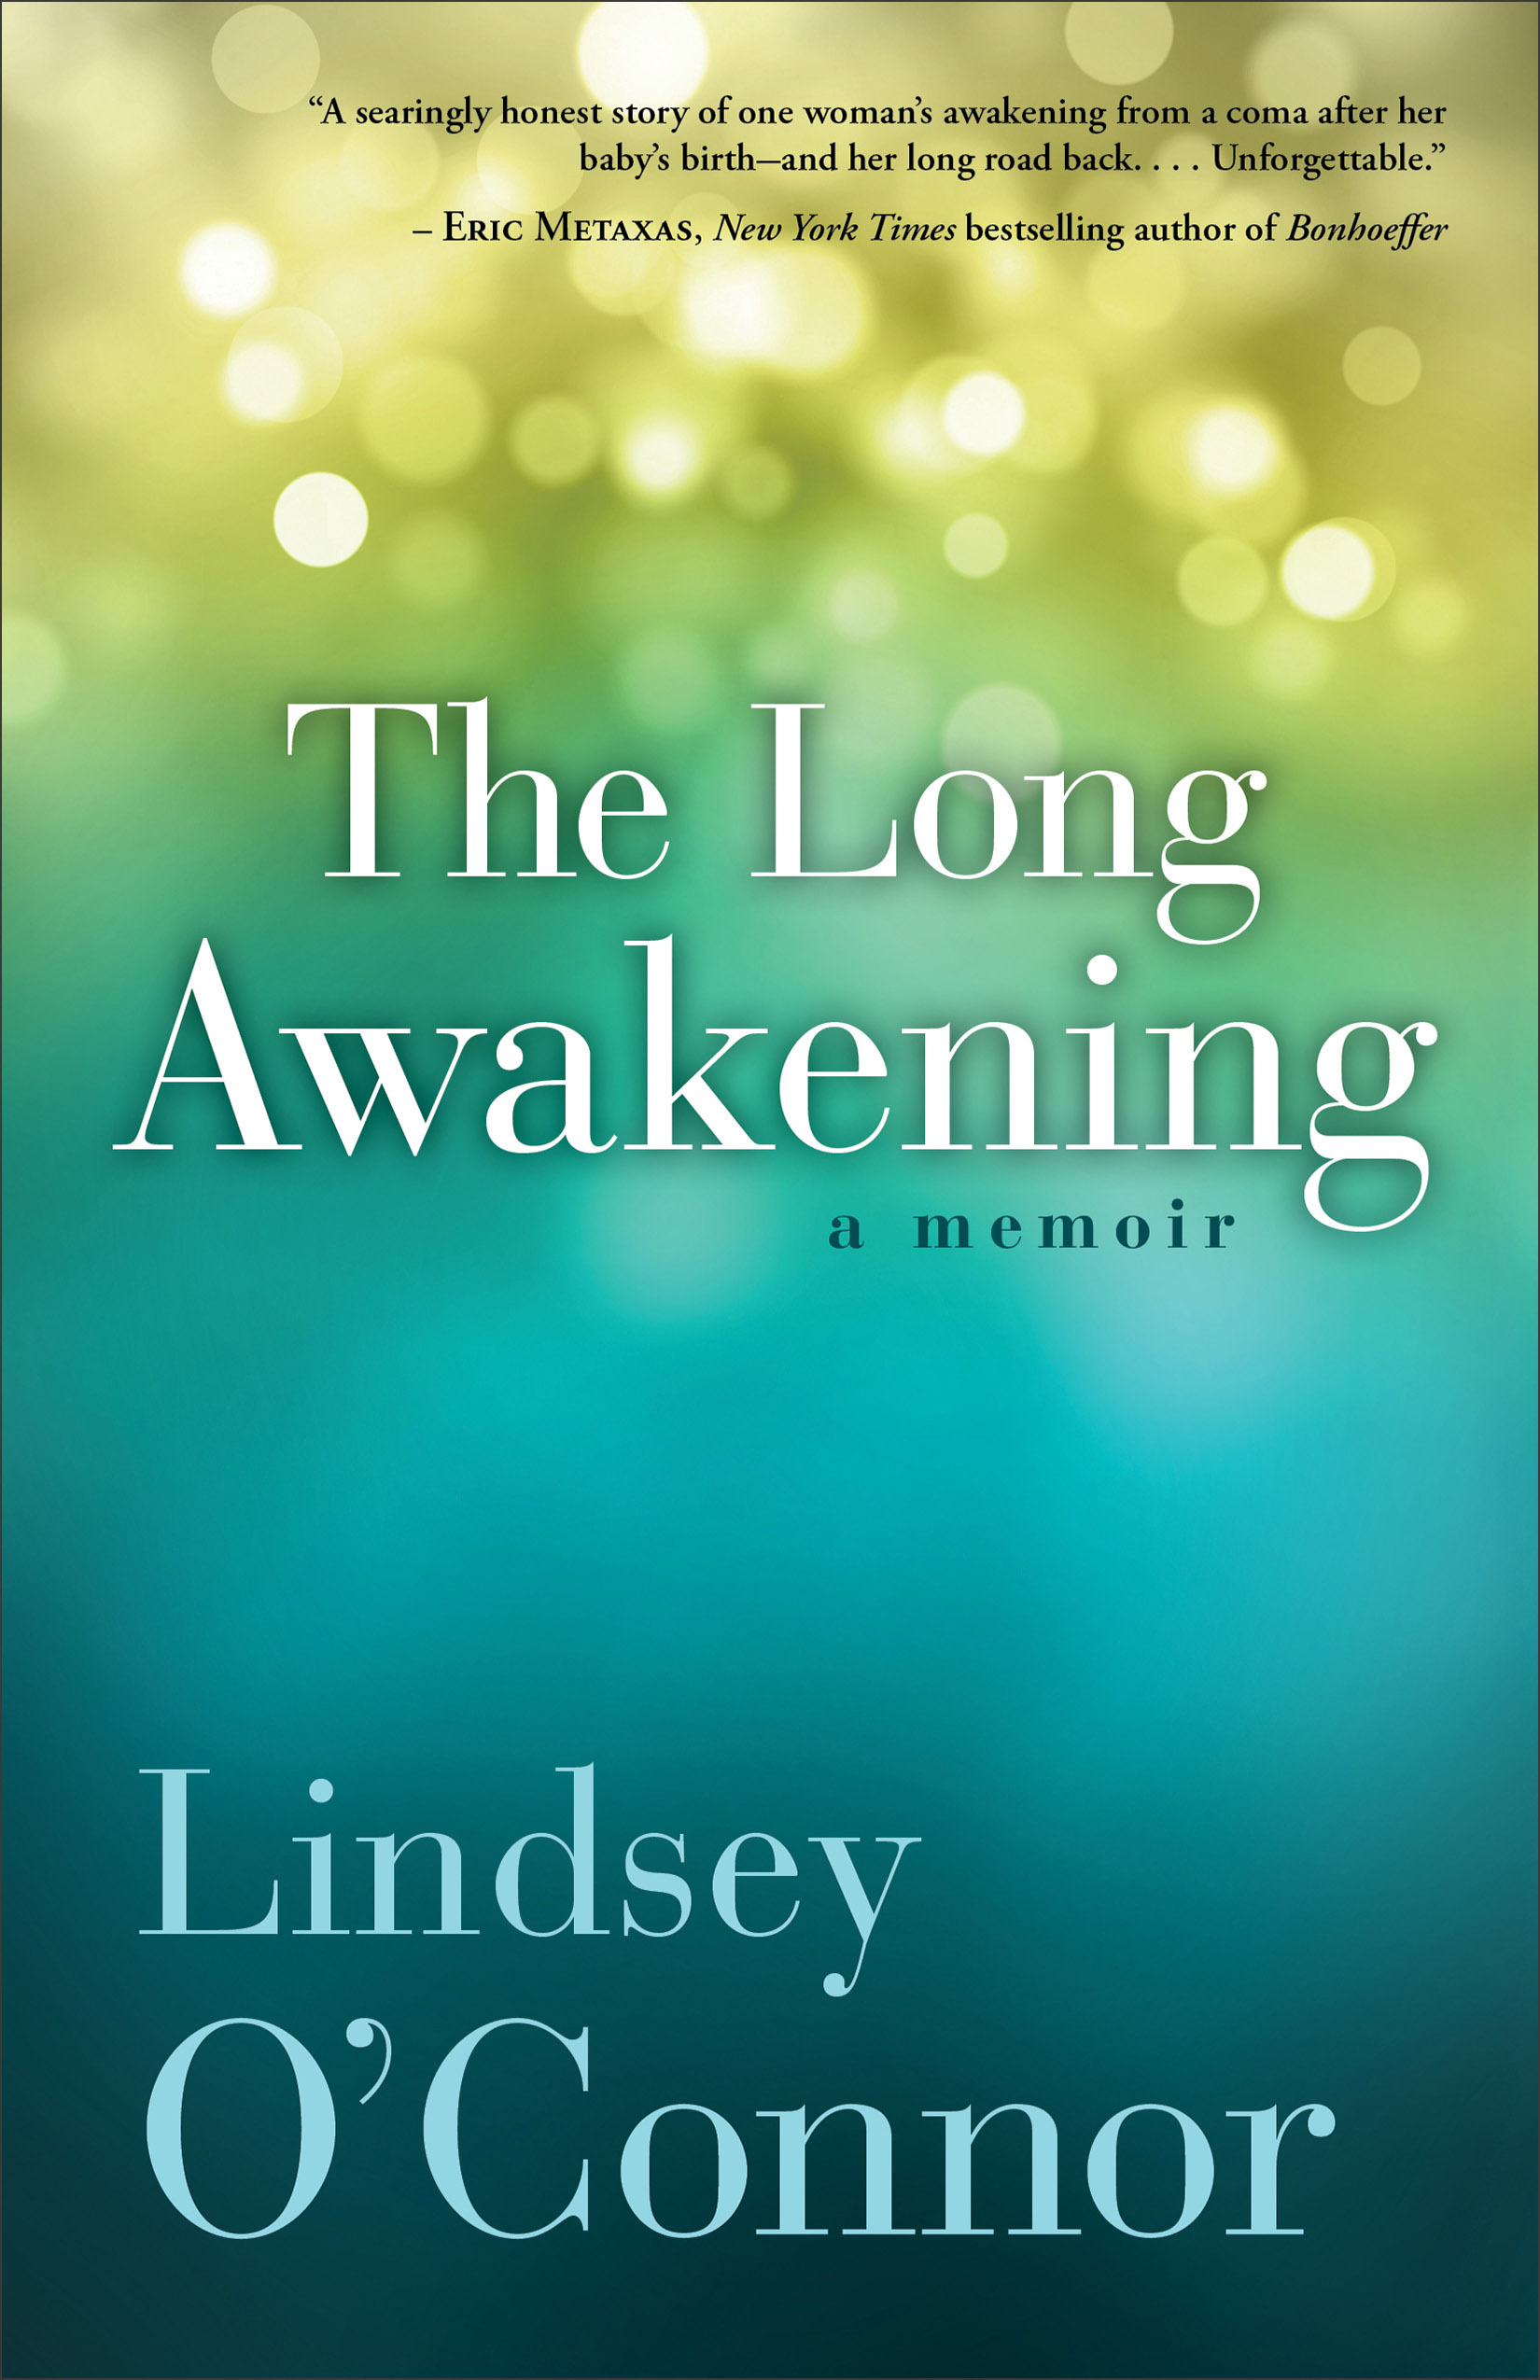 The Long Awakening by Lindesy O'Connor